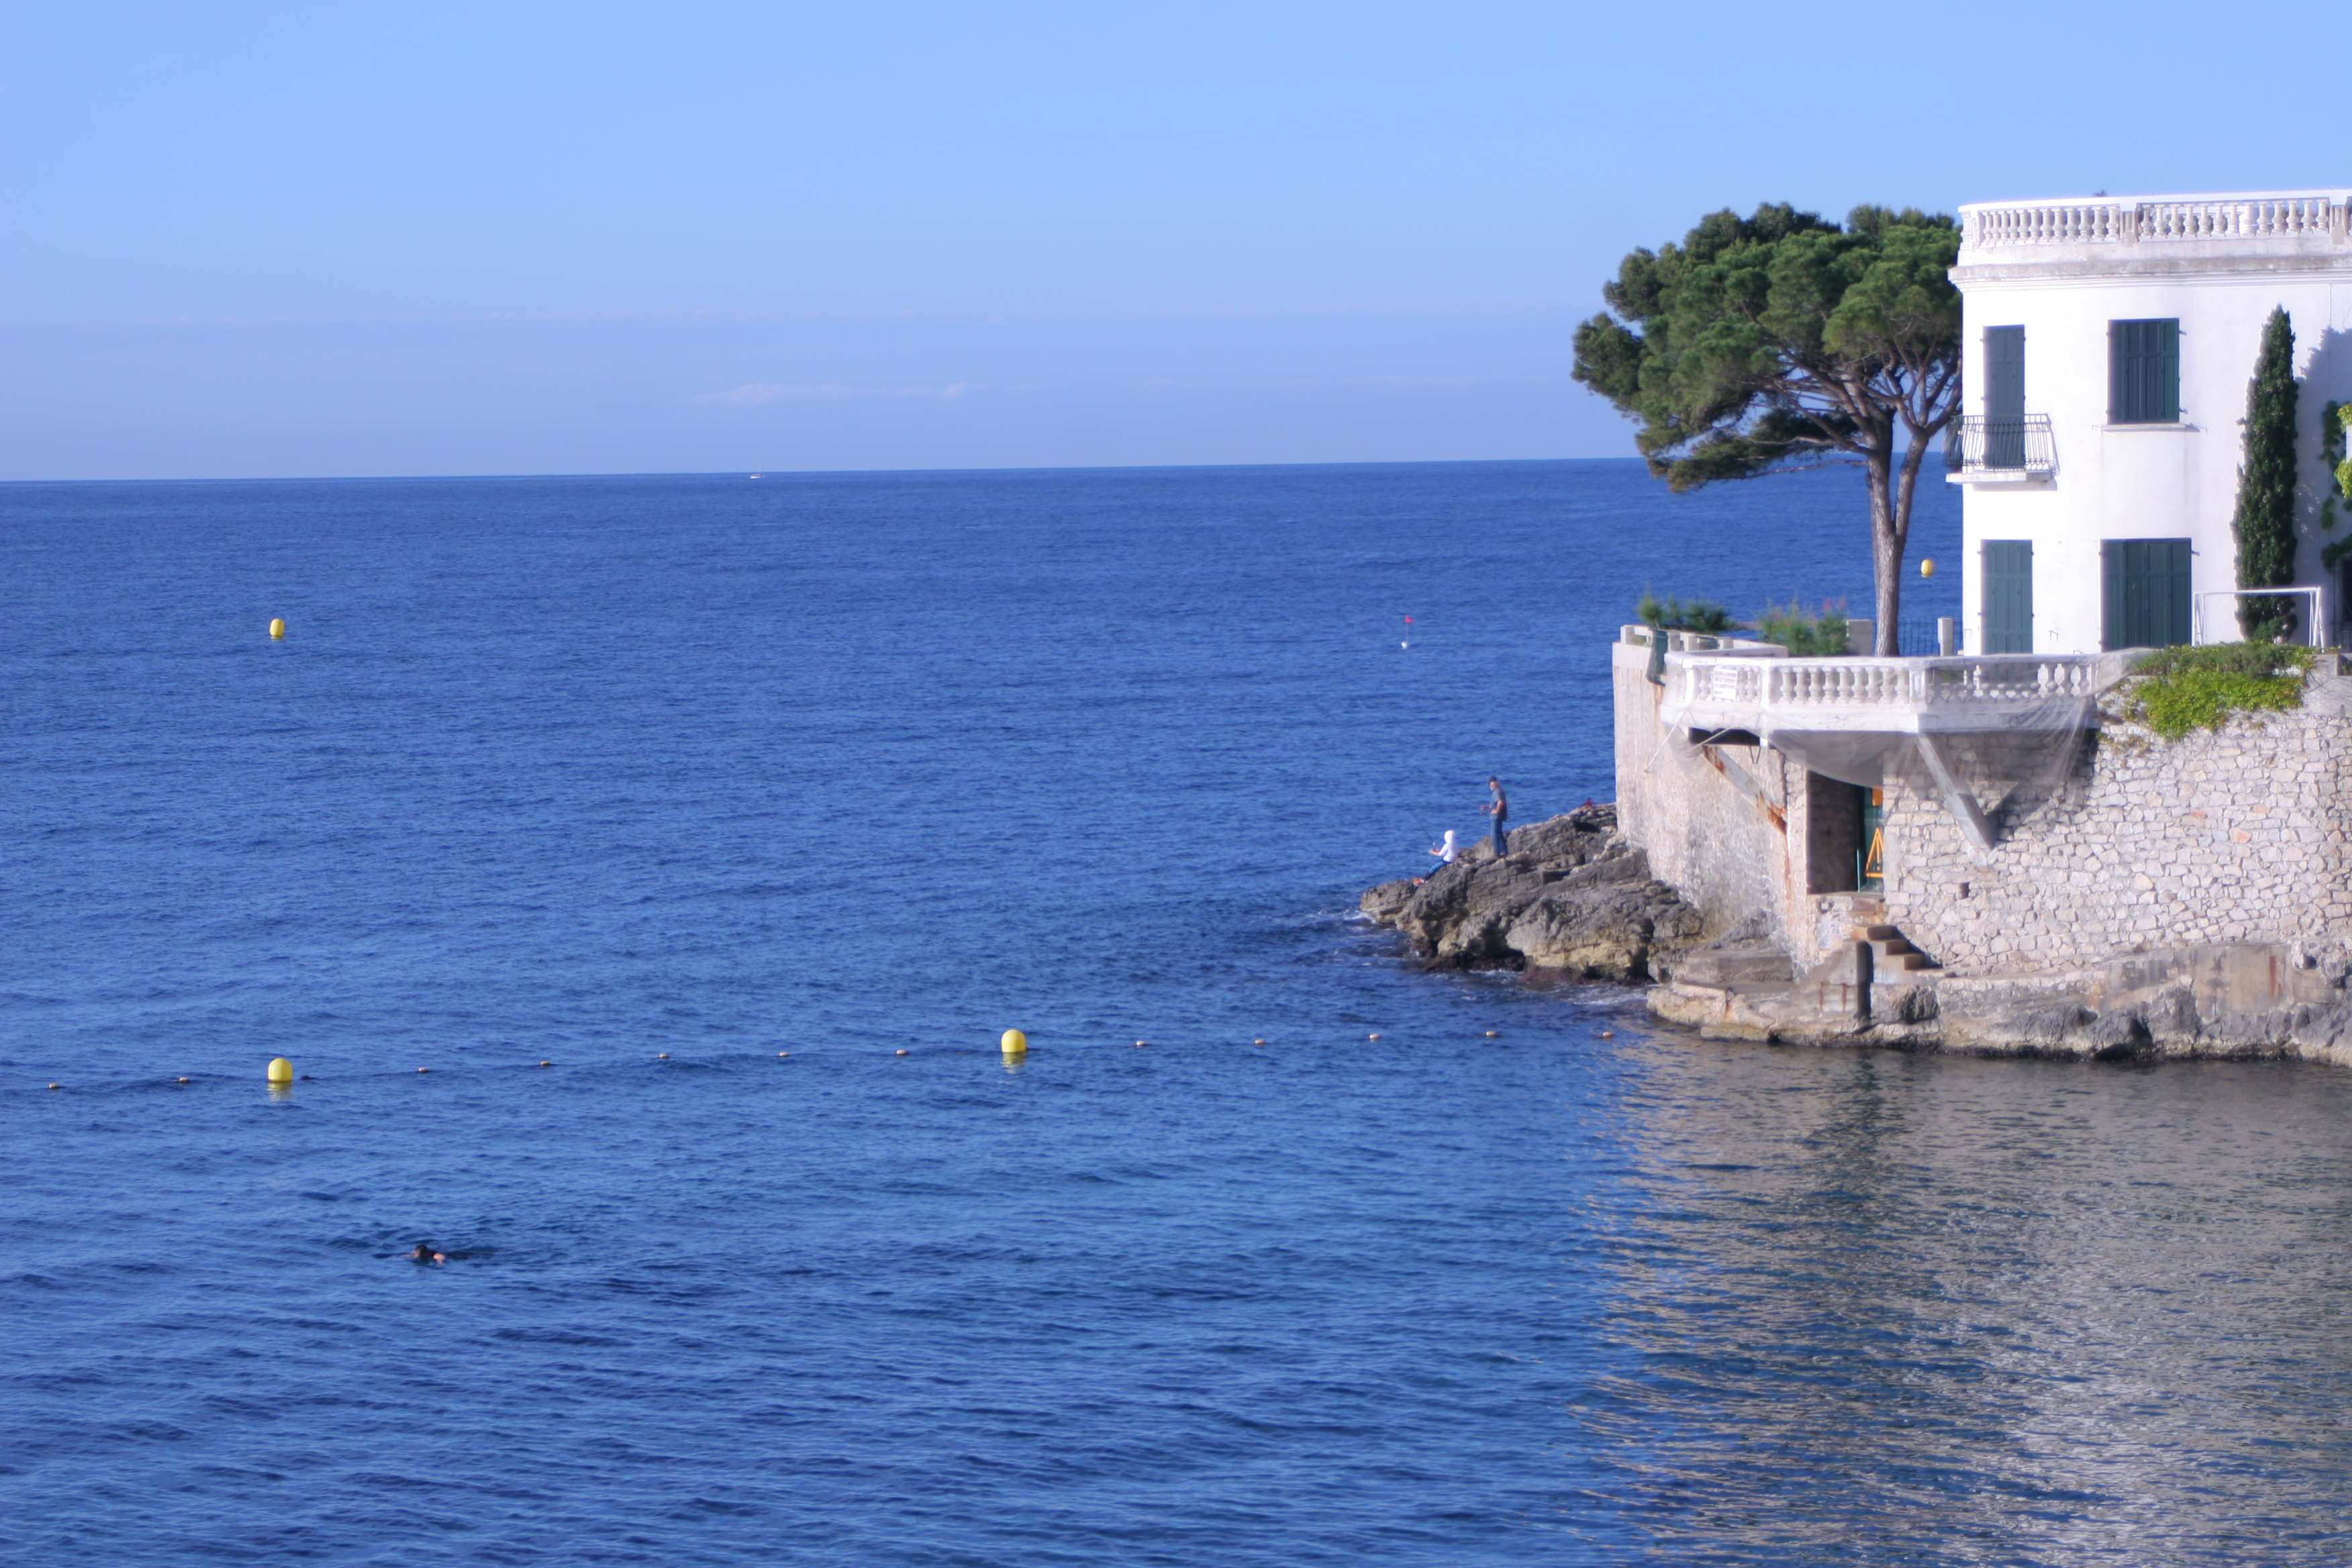 A morning swimmer crosses the harbor while a boy fishes on the rocks below a seaside villa. Cassis, France.